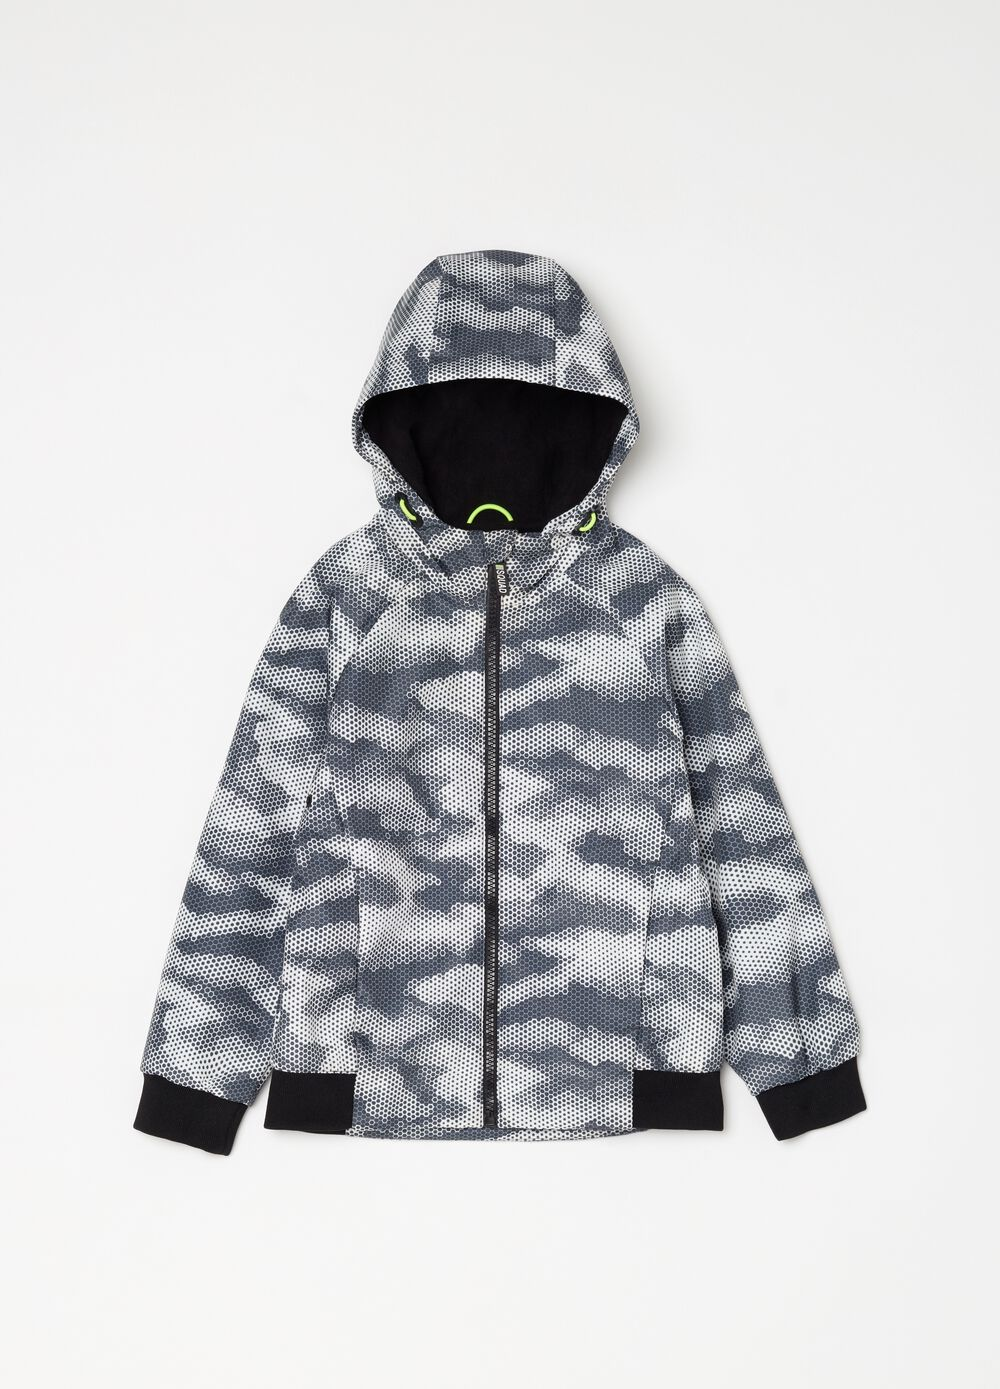 Neoprene bomber jacket with camouflage pattern